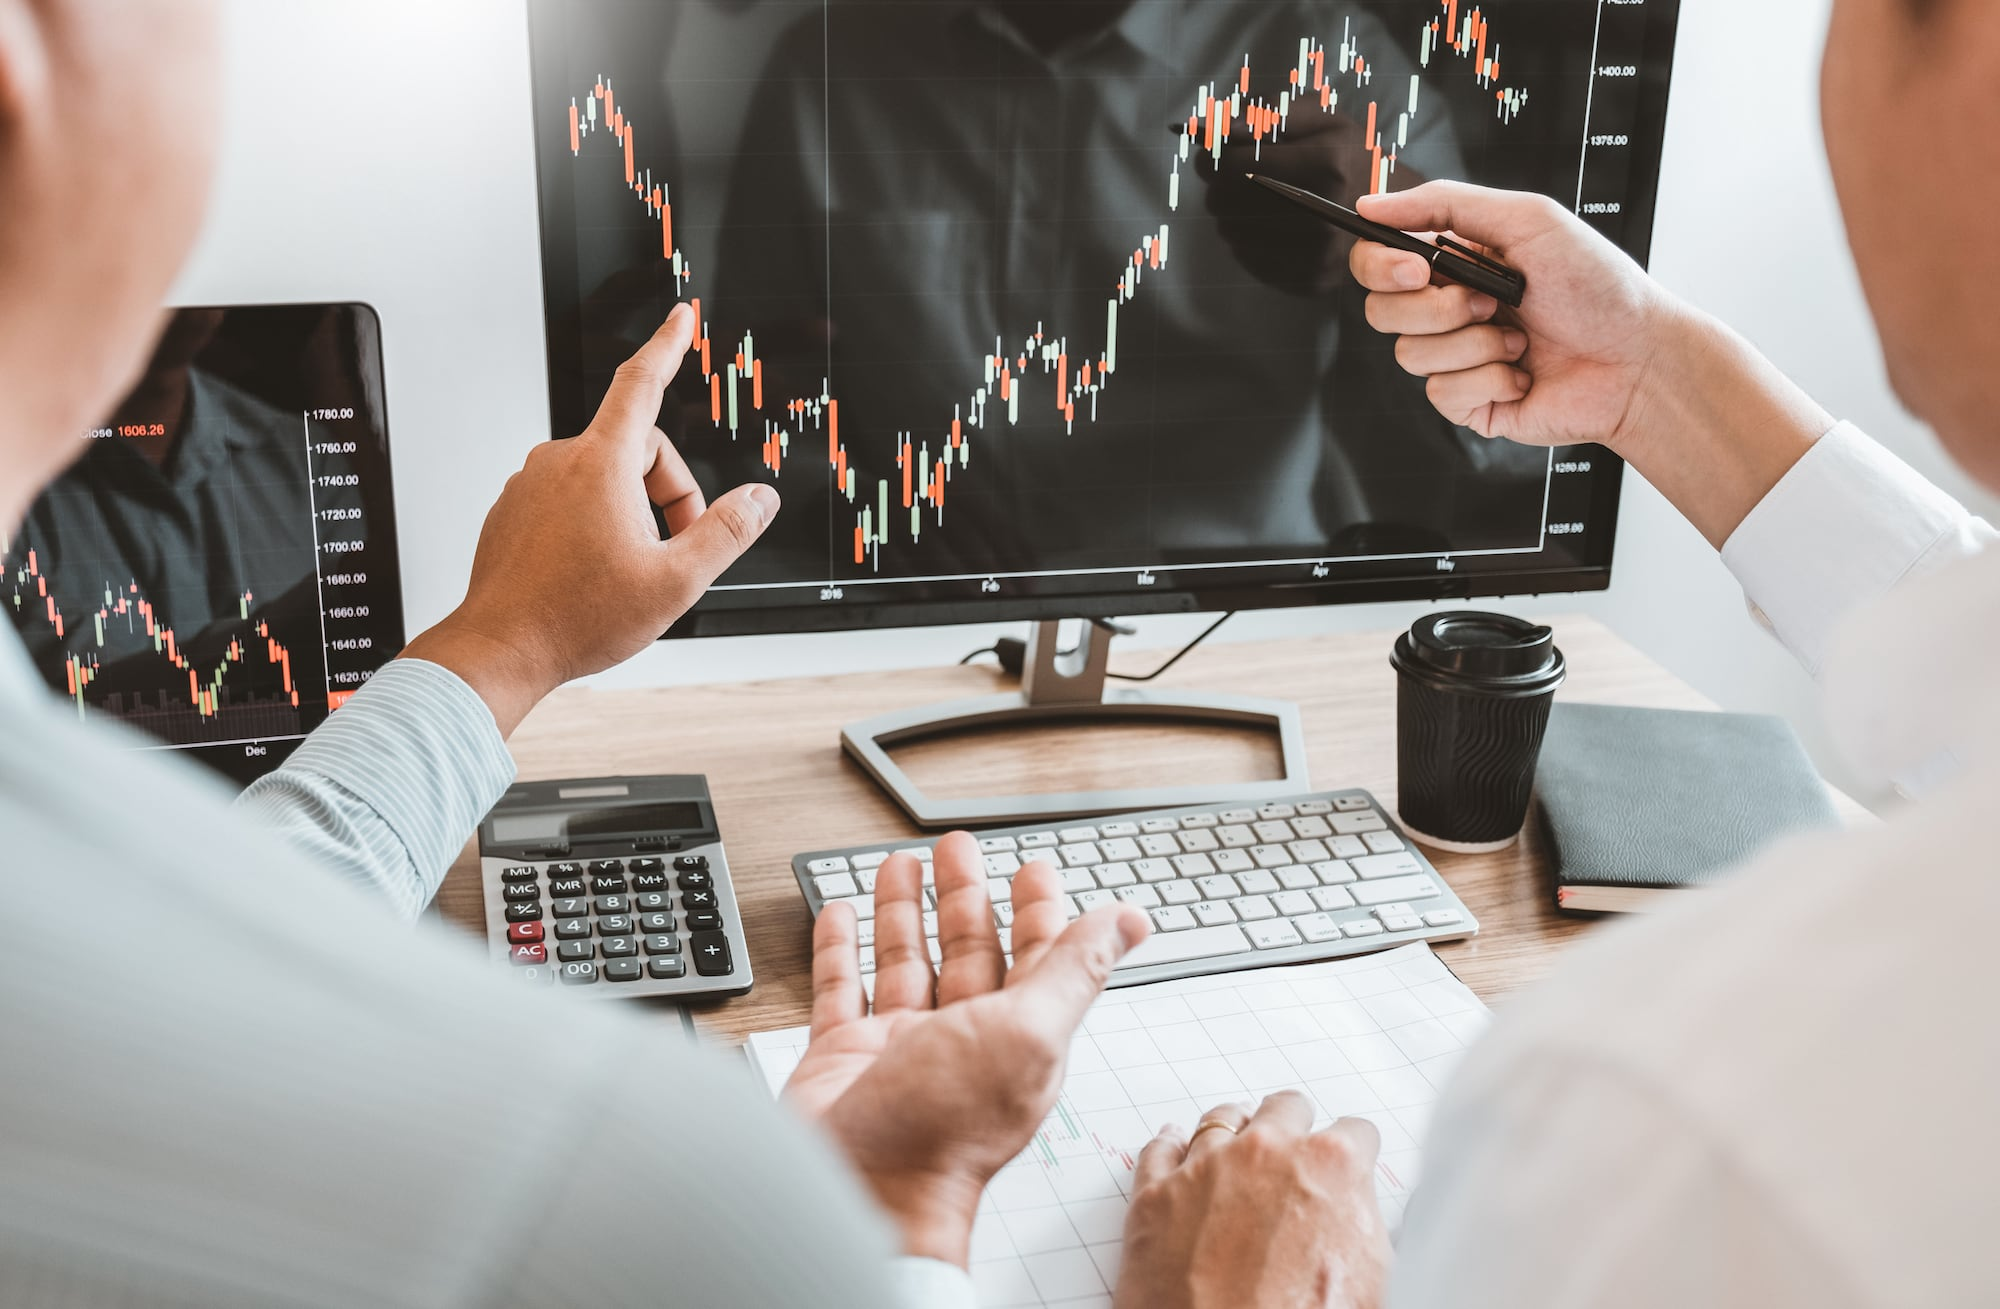 investor looking at stock charts on computer